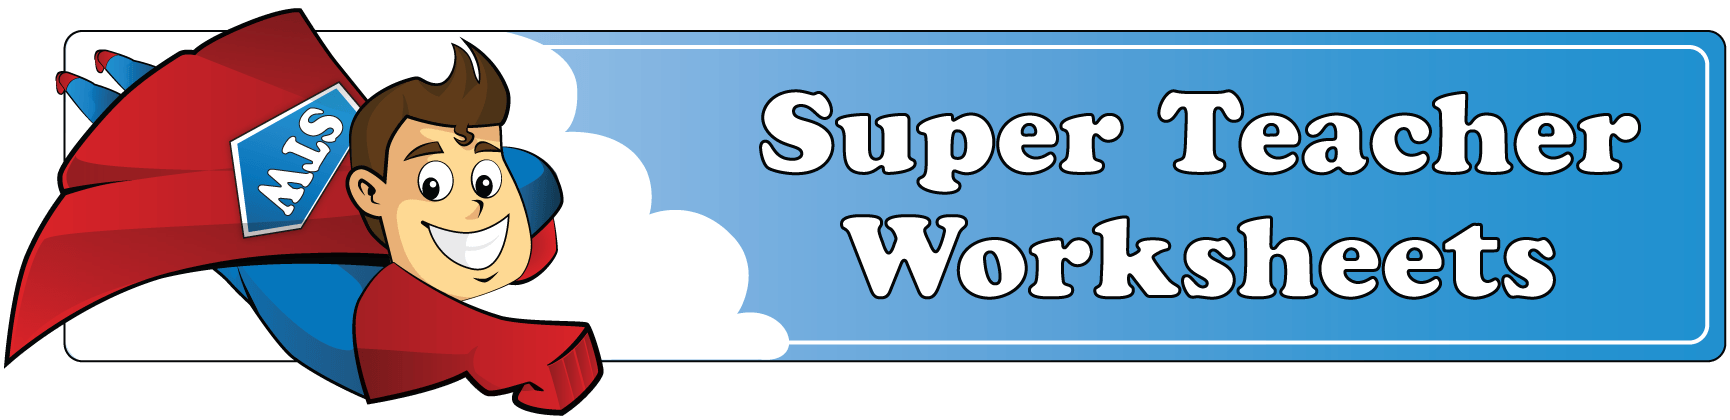 Worksheets Super Teacher Free Worksheets log in to super teacher worksheets worksheets